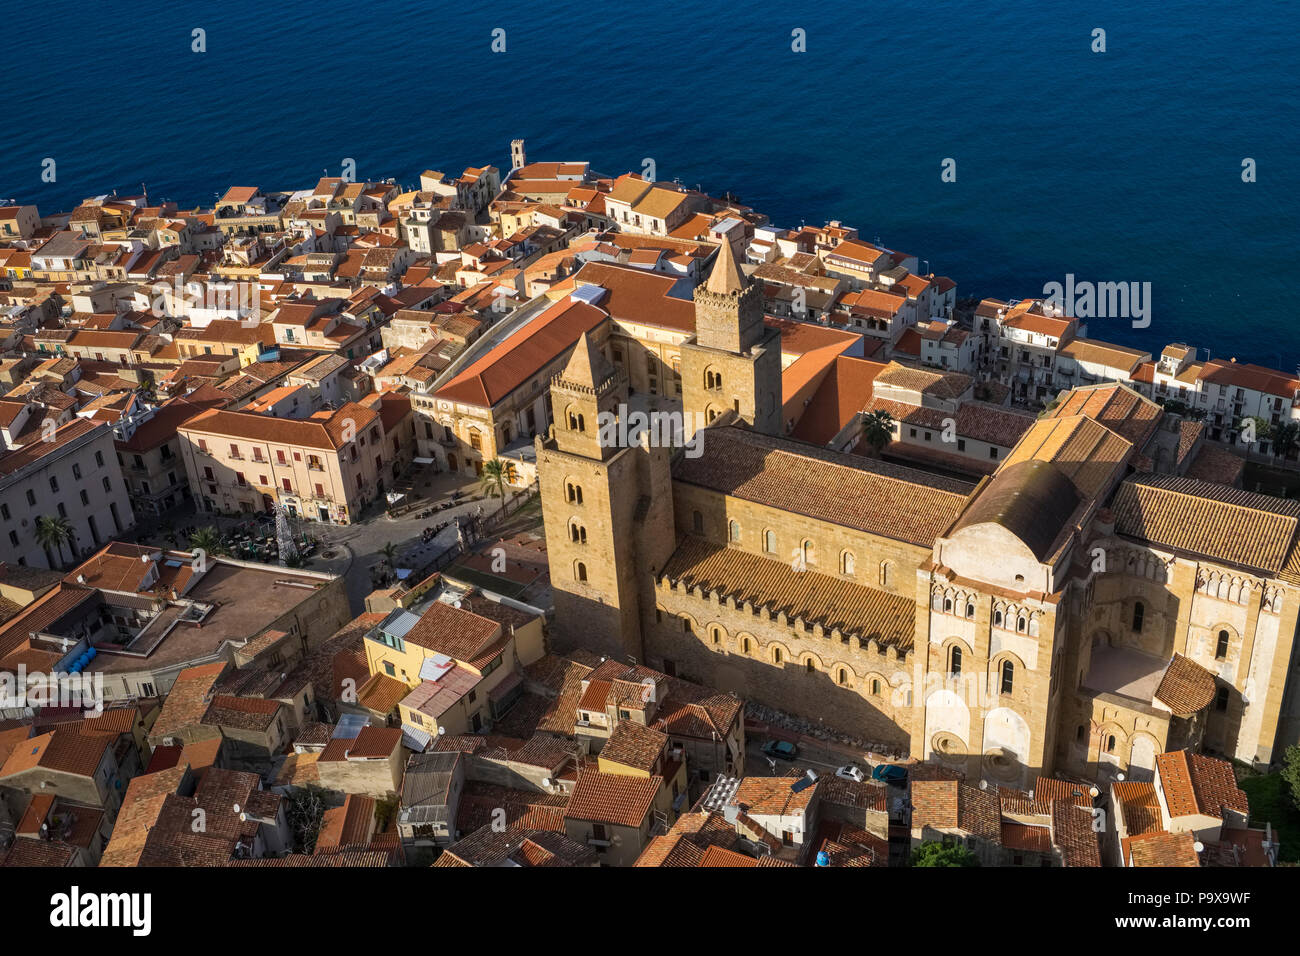 Aerial view of Cefalu Cathedral and red rooftops buildings architecture, Cefalu, Sicily, Italy, Europe - Stock Image